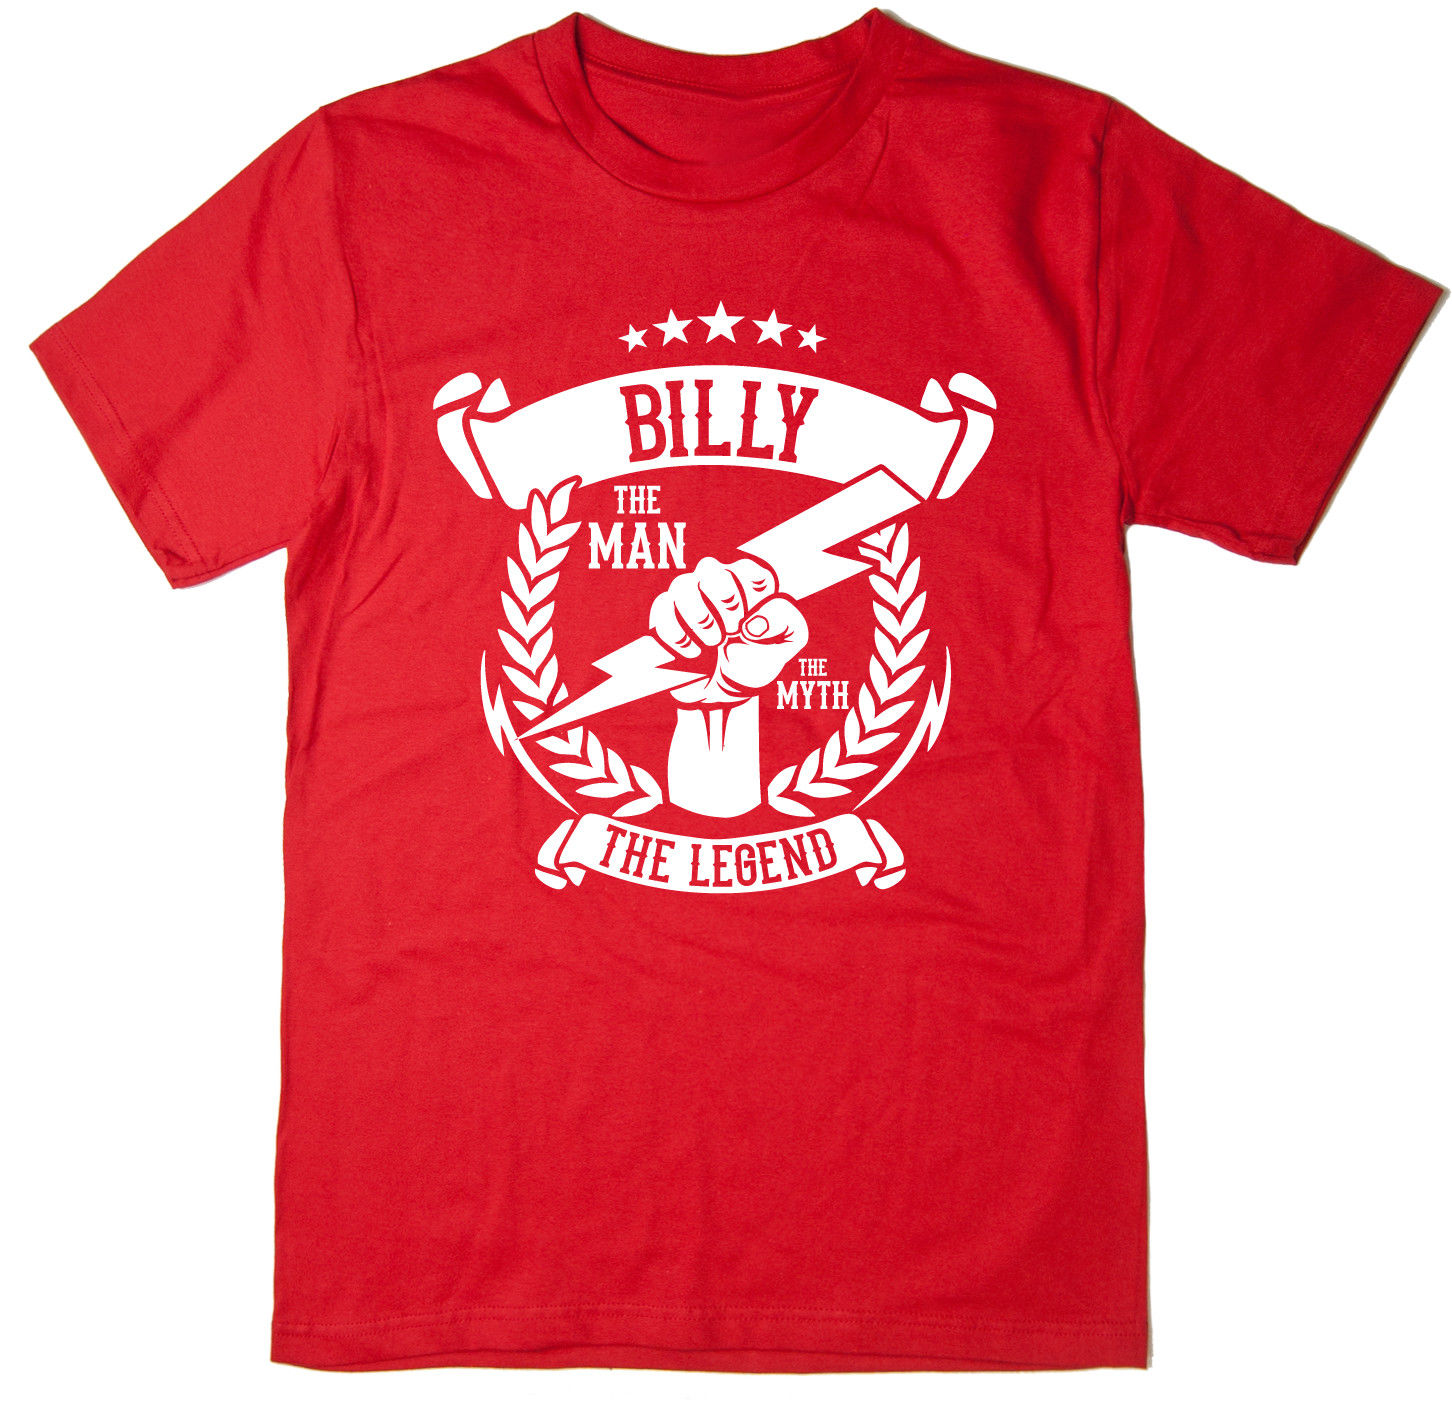 Billy The Man The Myth The Legend T Shirt Christmas gift idea 6 colours New T Shirts Funny Tops Tee New Unisex Funny in T Shirts from Men 39 s Clothing